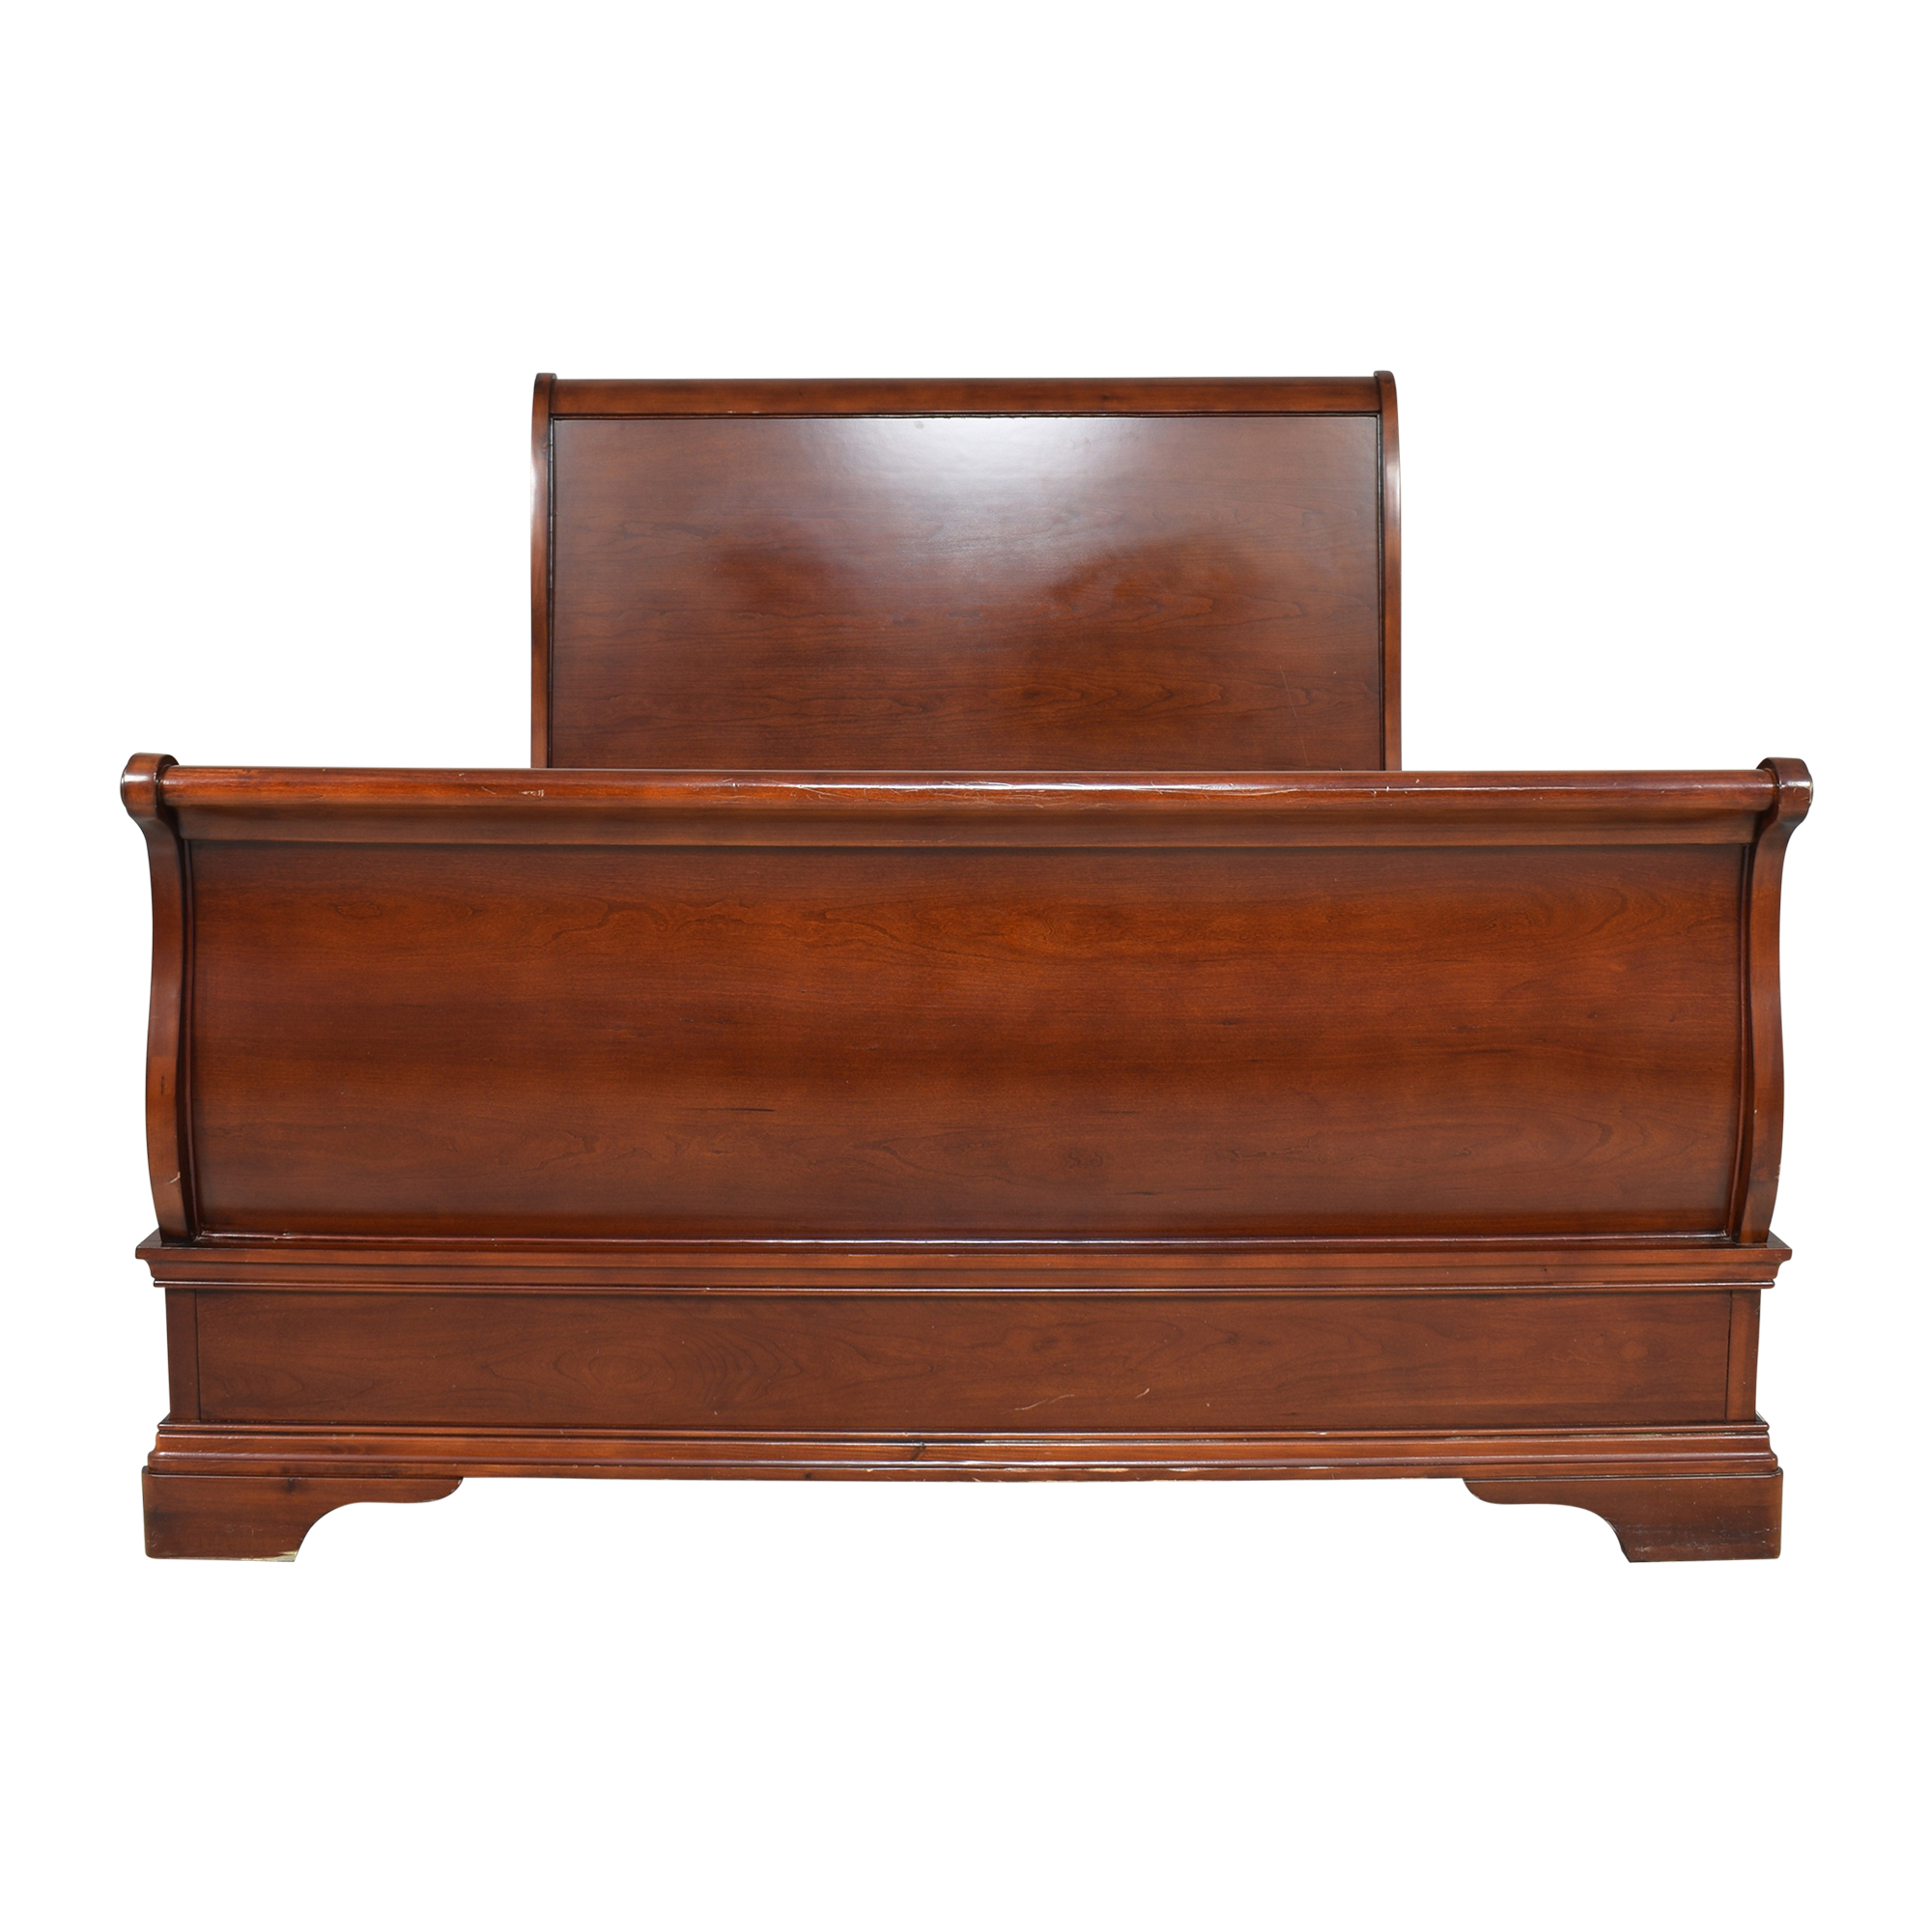 Raymour & Flanigan Raymour & Flanigan Queen Sleigh Bed for sale